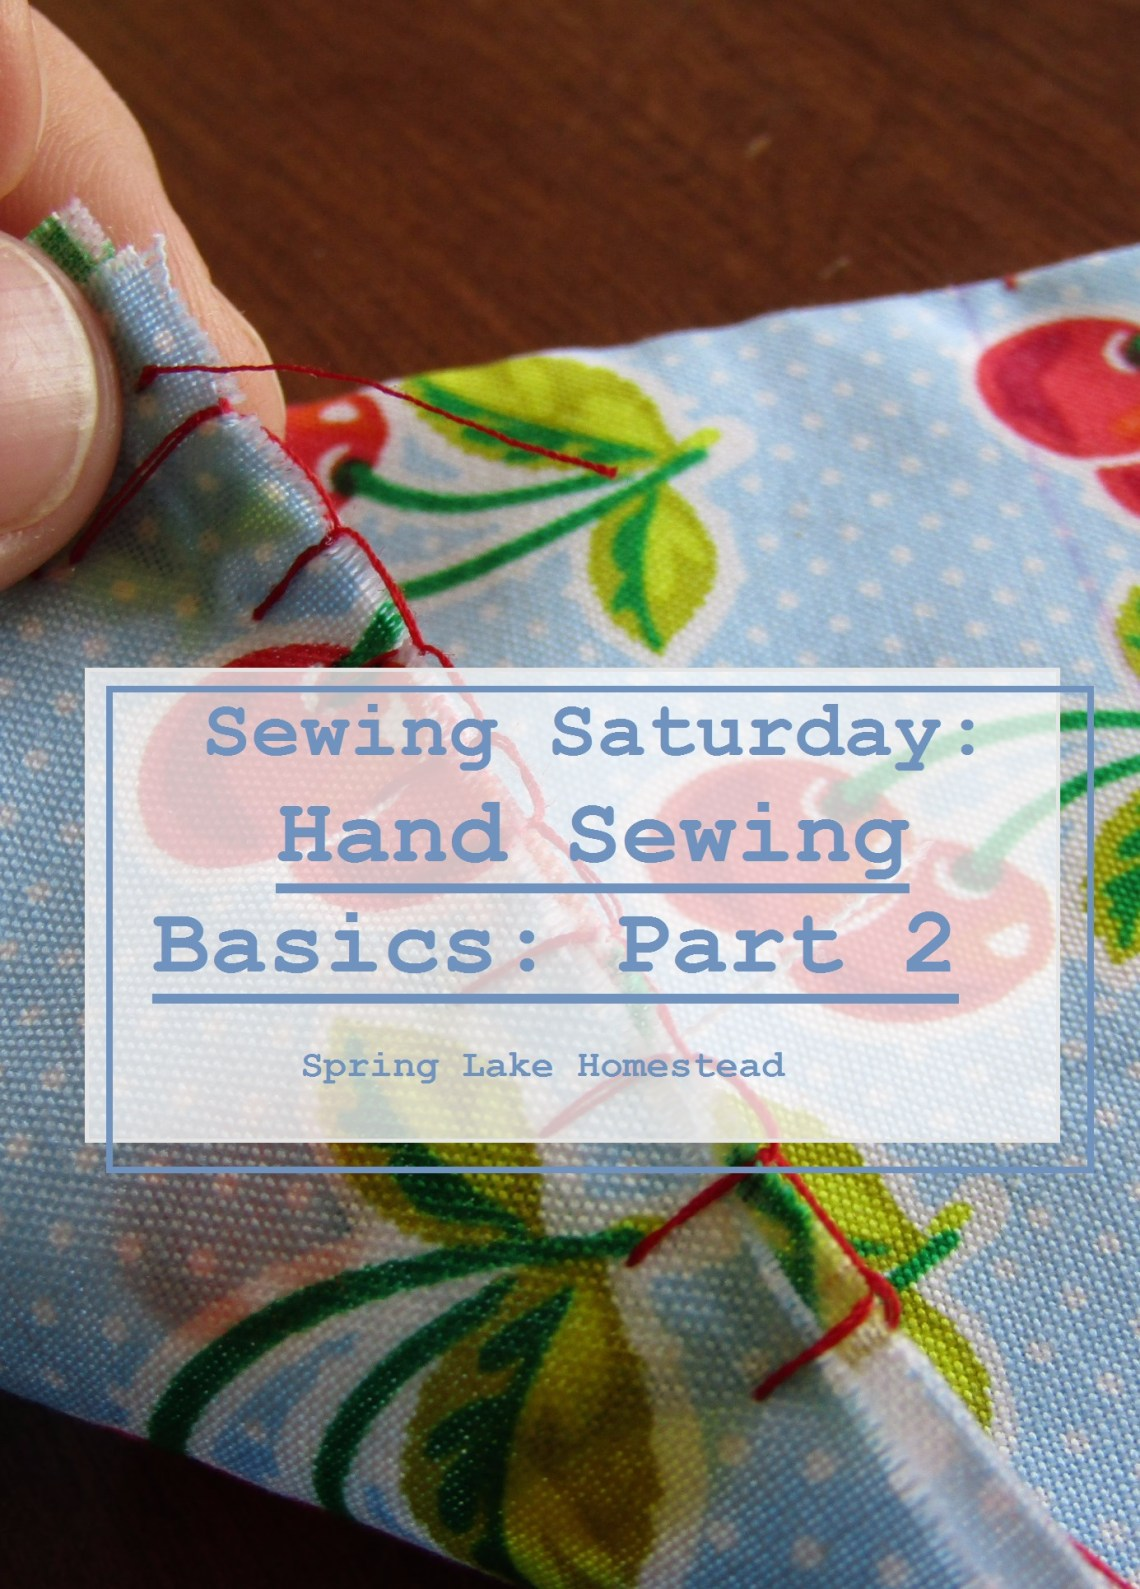 Hand Sewing Basics: Part 2